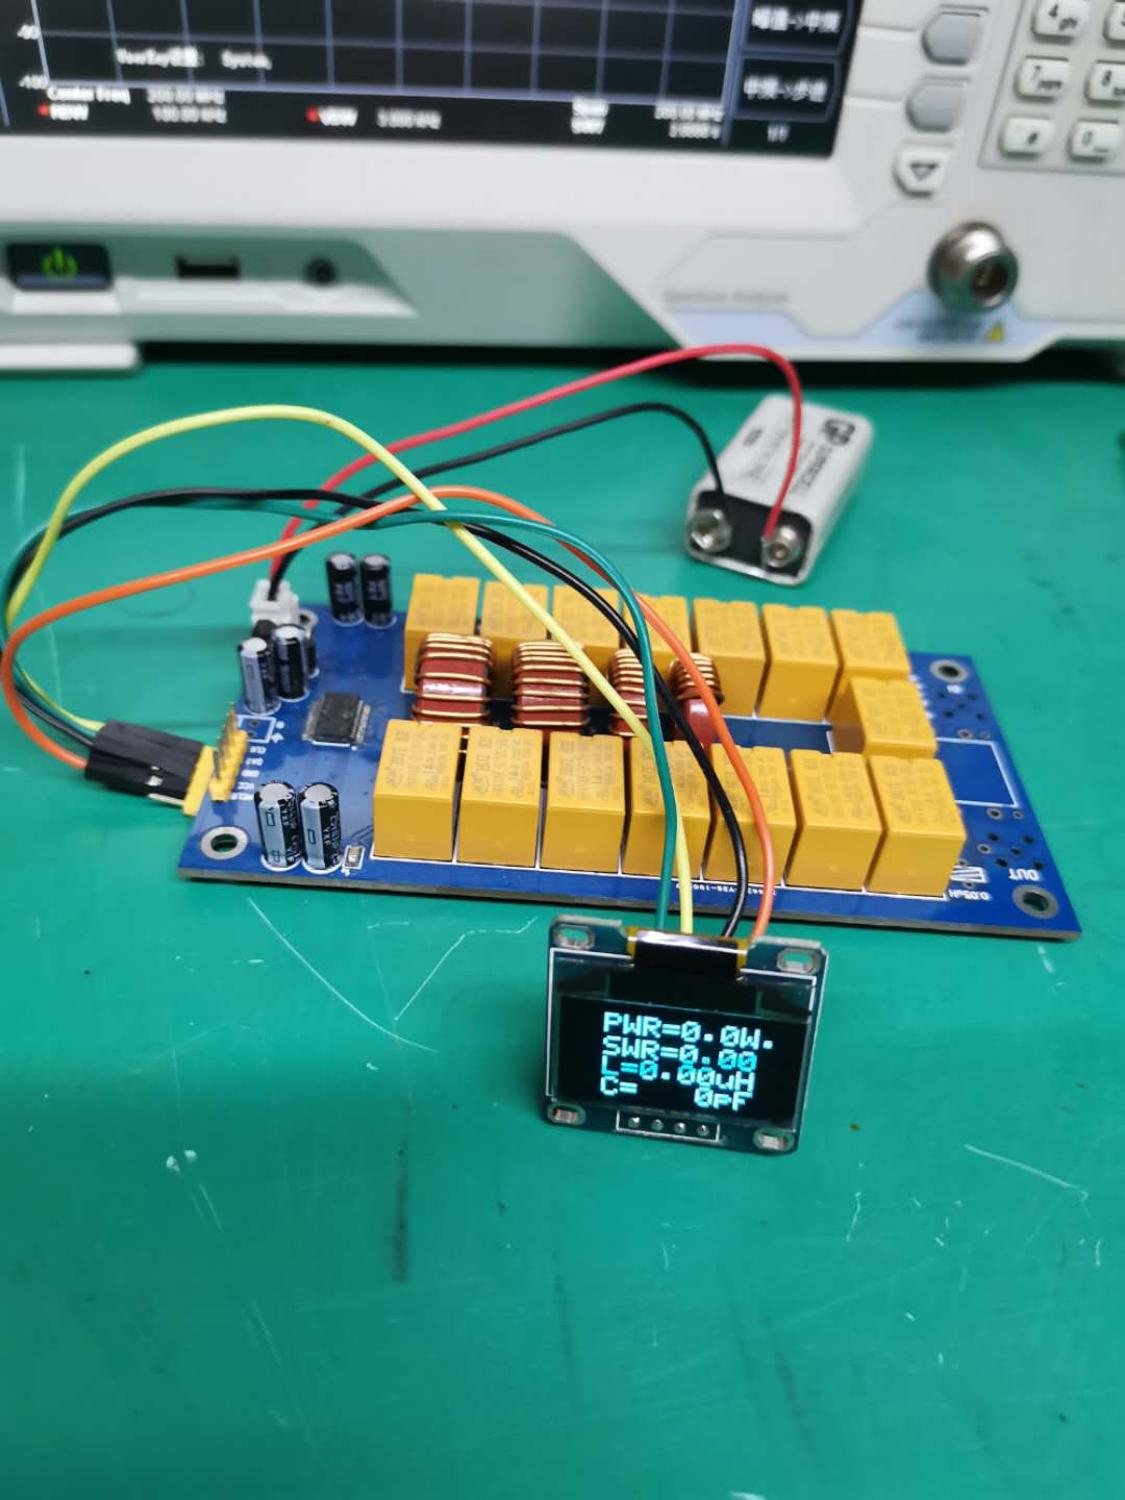 Diy-Kits Tuner OLED Automatic-Antenna Soldered N7ddc 7x7 ATU-100 by Firmware Smd/chip